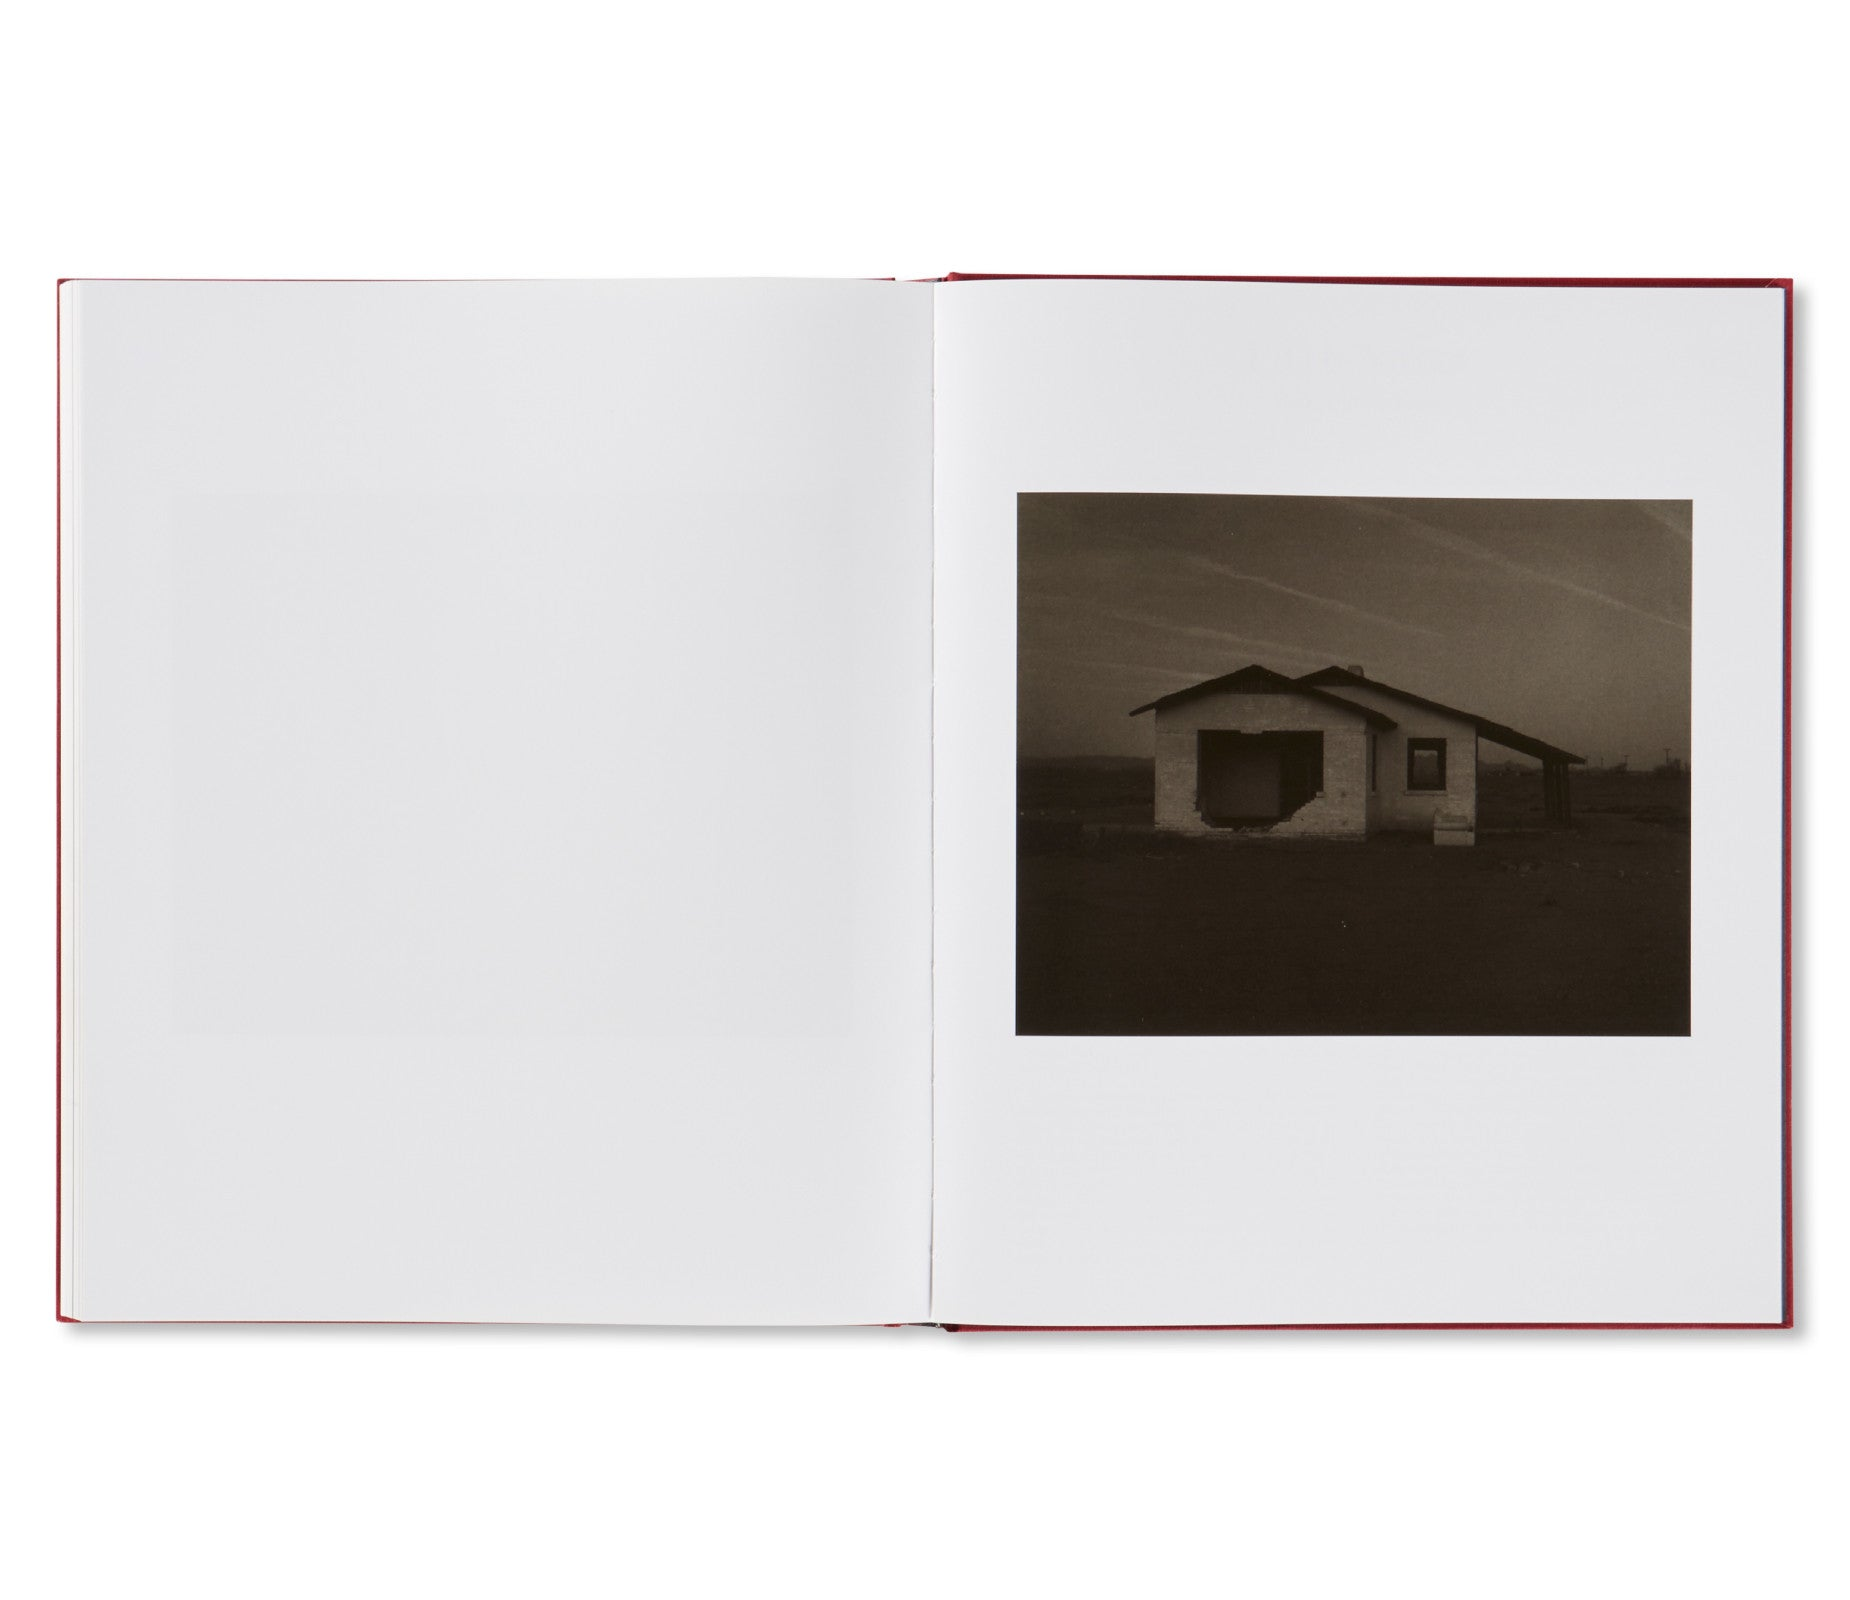 MESSAGE FROM THE EXTERIOR by Mark Ruwedel [SPECIAL EDITION / SIGNED]